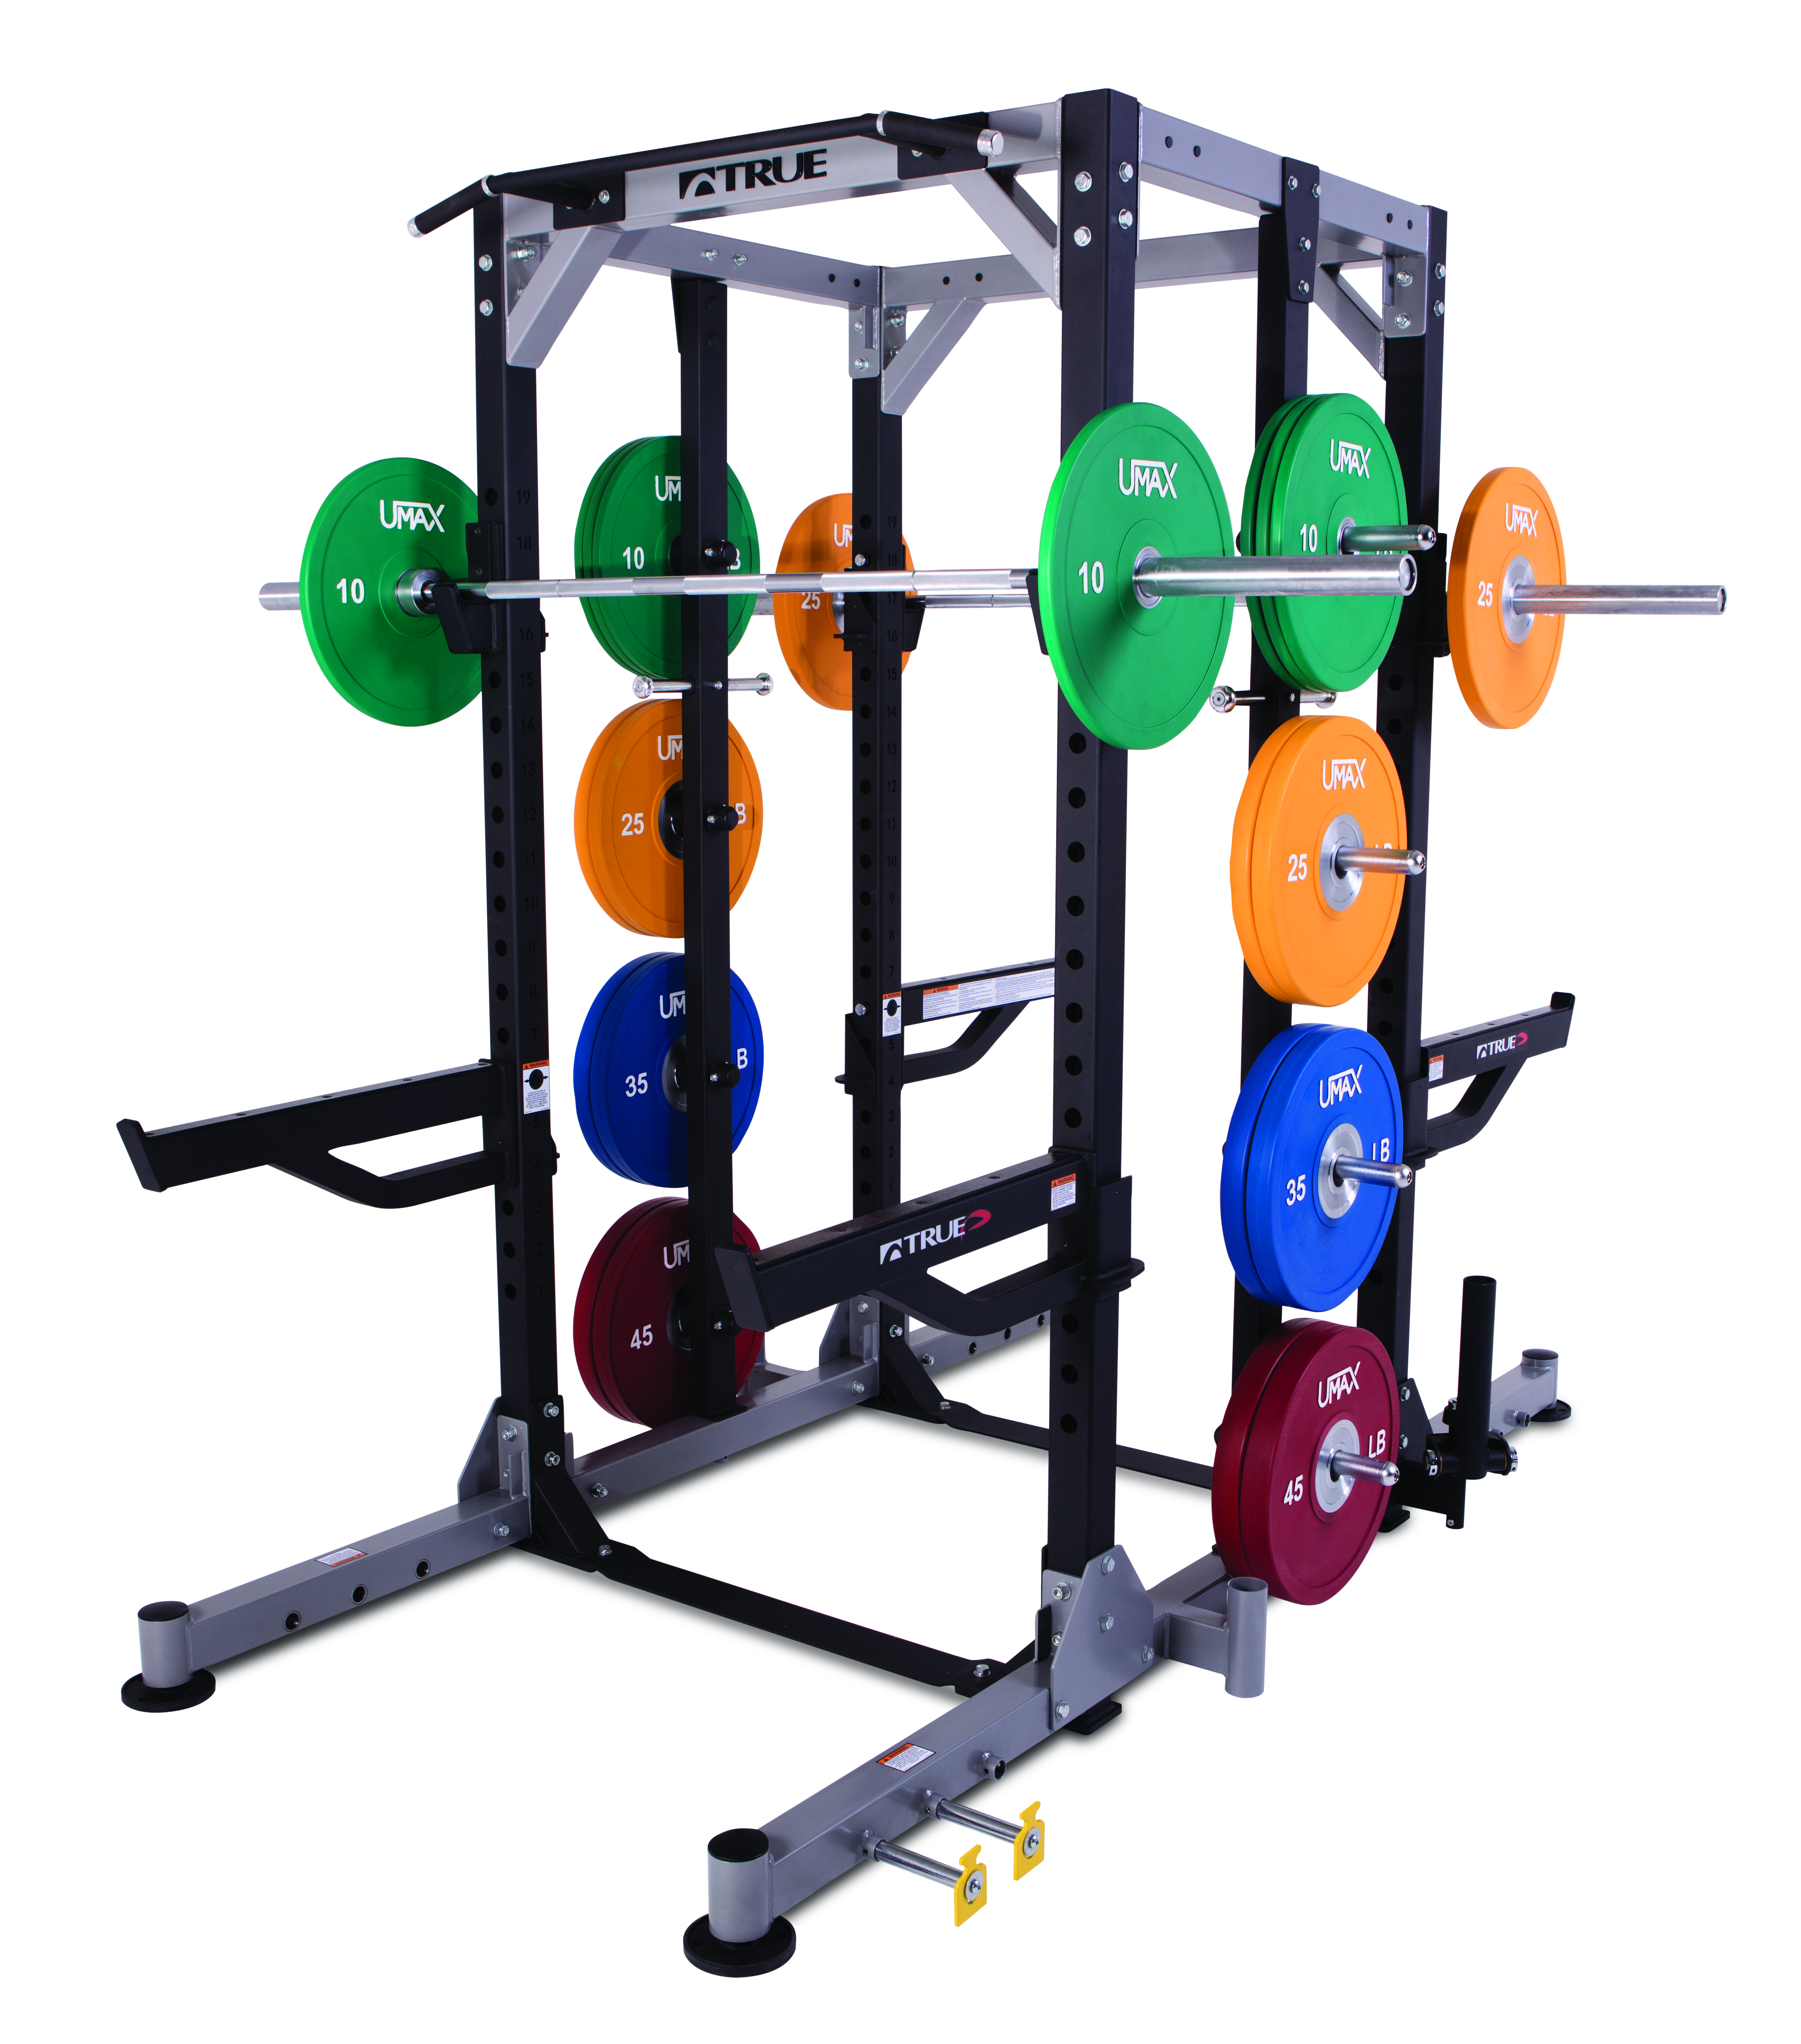 Paramount XFW 8300 Dual Sided Half Rack